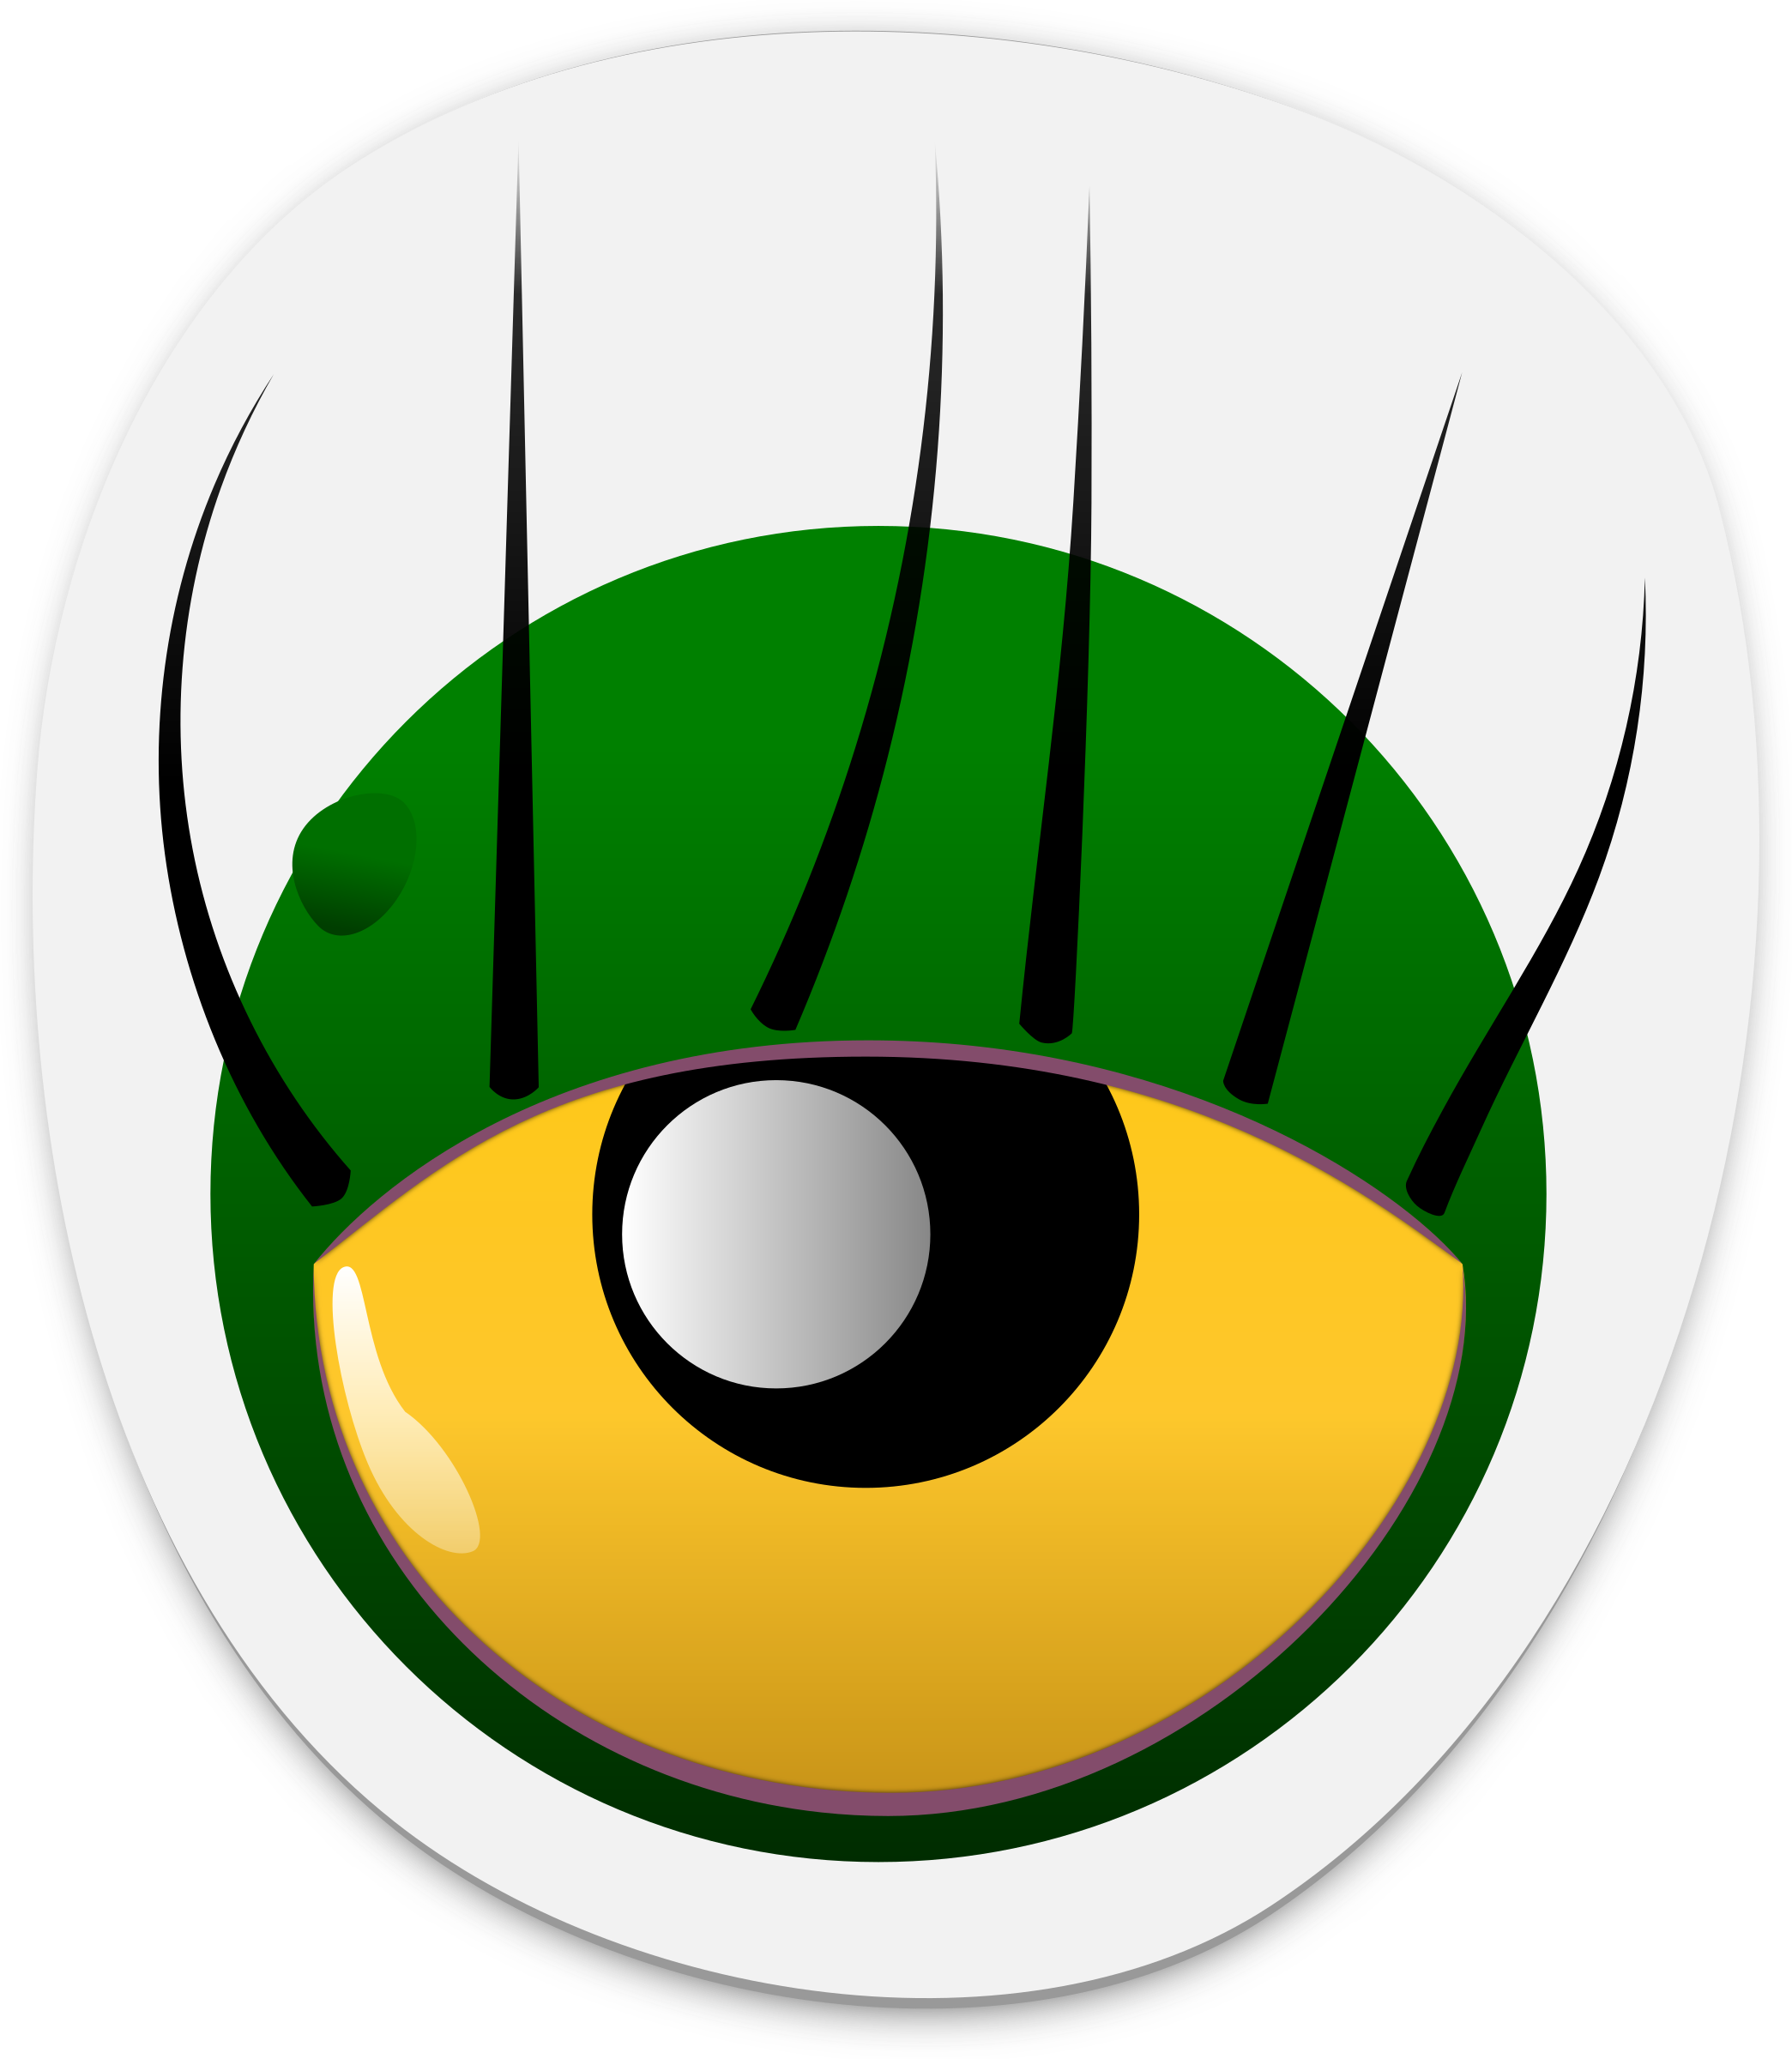 Monster eye png. Sticker icons free and